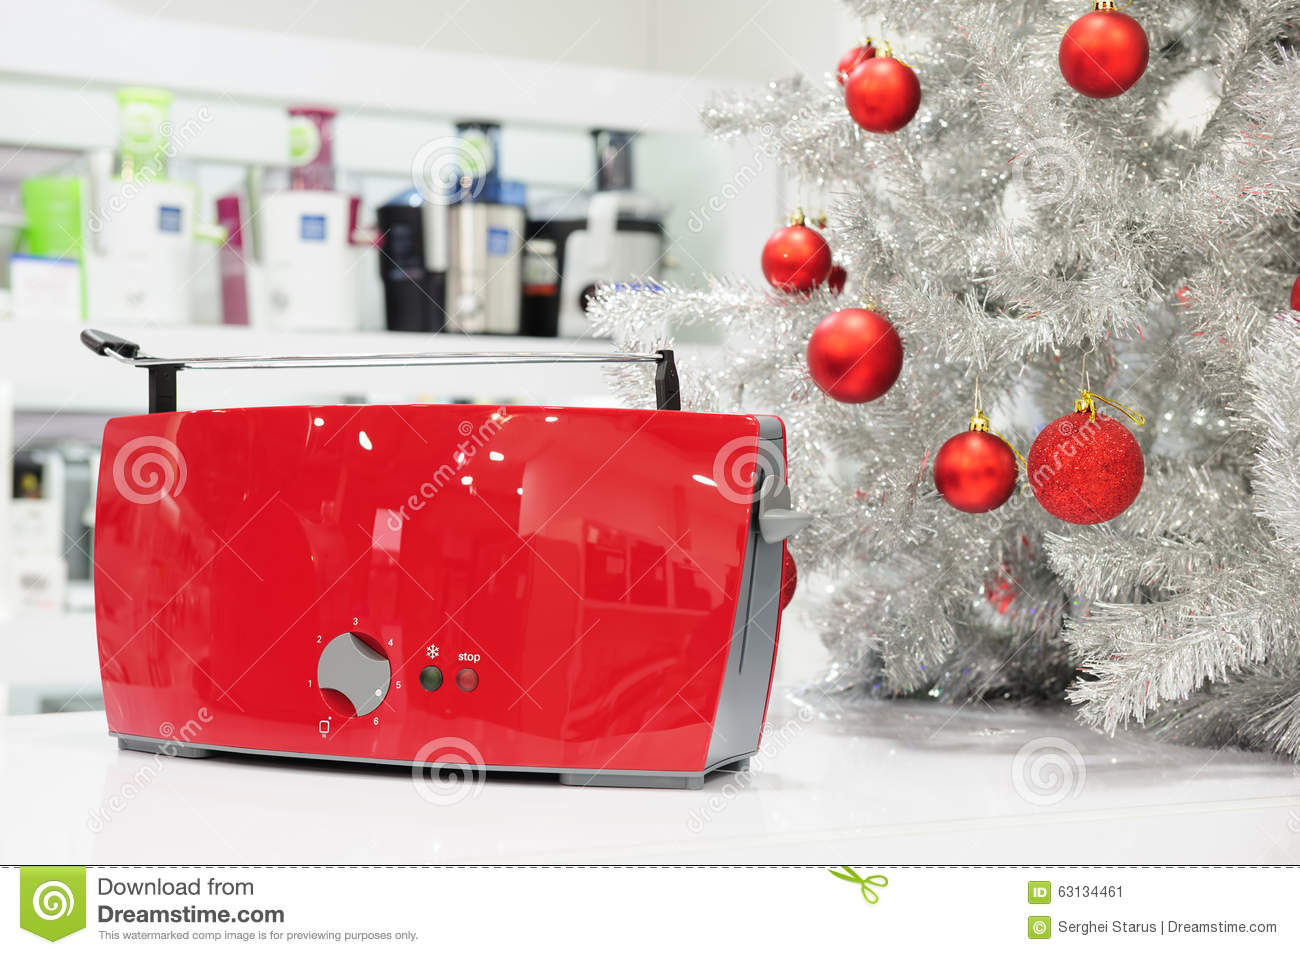 Home appliances store at christmas stock photo image